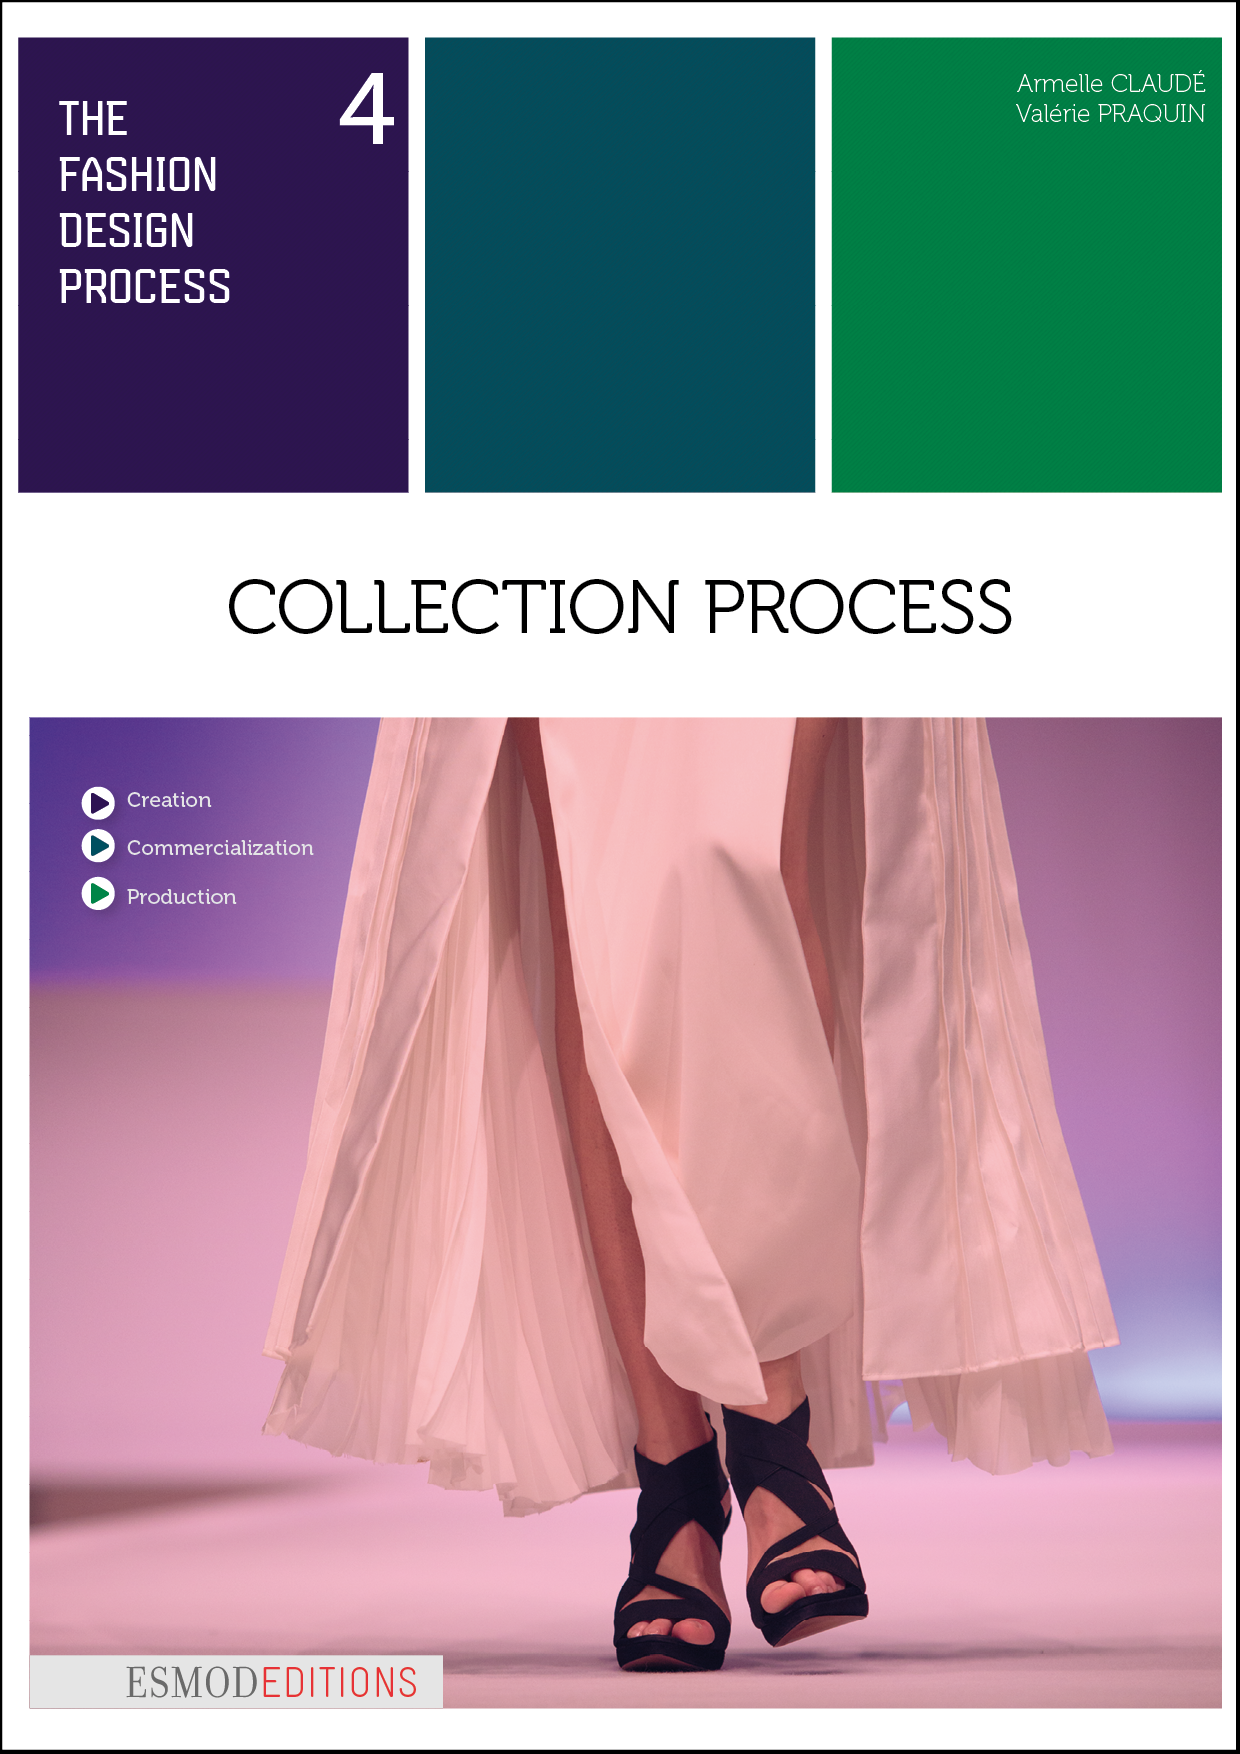 The fashion design process 4: Collection process